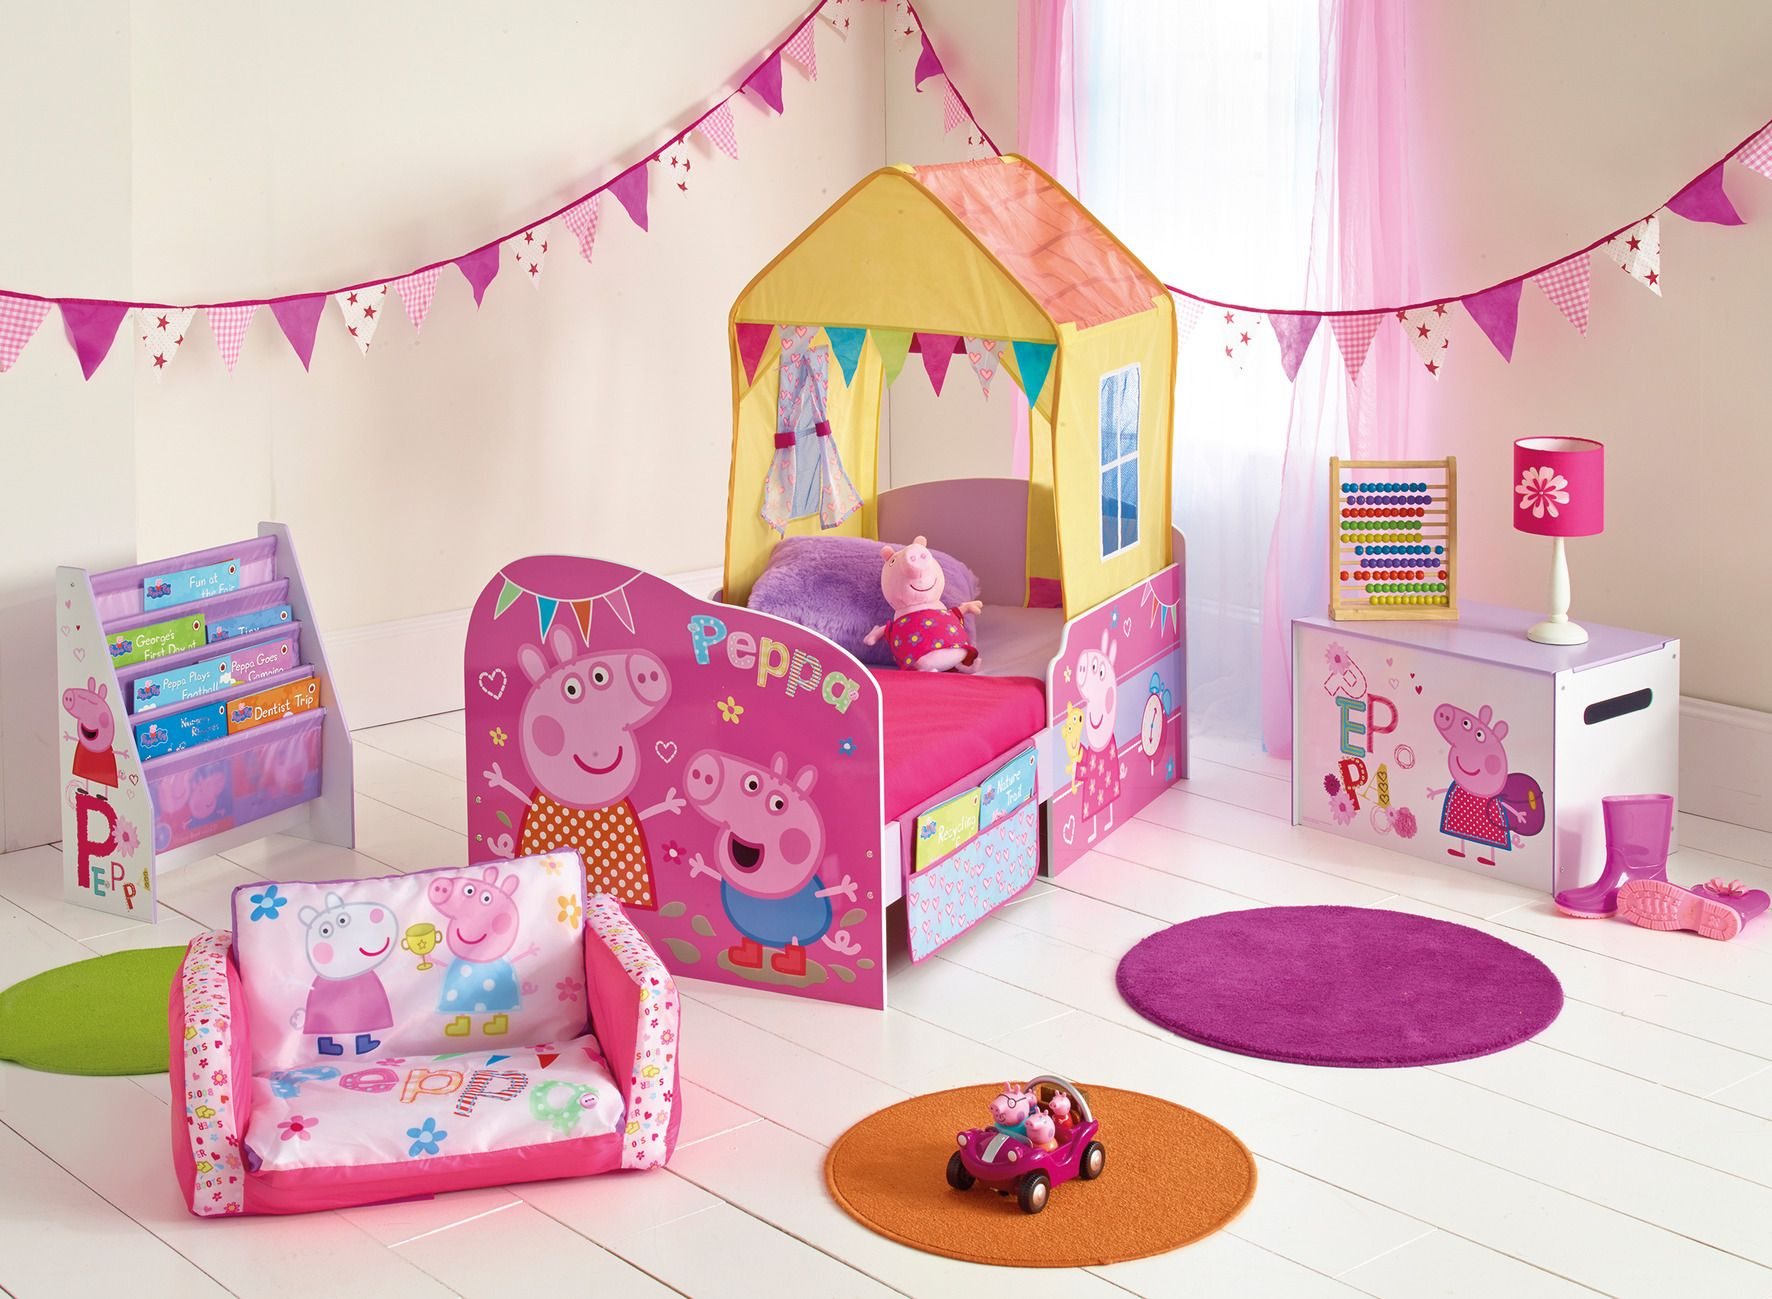 Fill Their Room With Friends The Peppa Pig Bedroom Furniture Range By Hellohome Whether They Are Tidying Up After A Day Of Splashing In Muddy Puddles